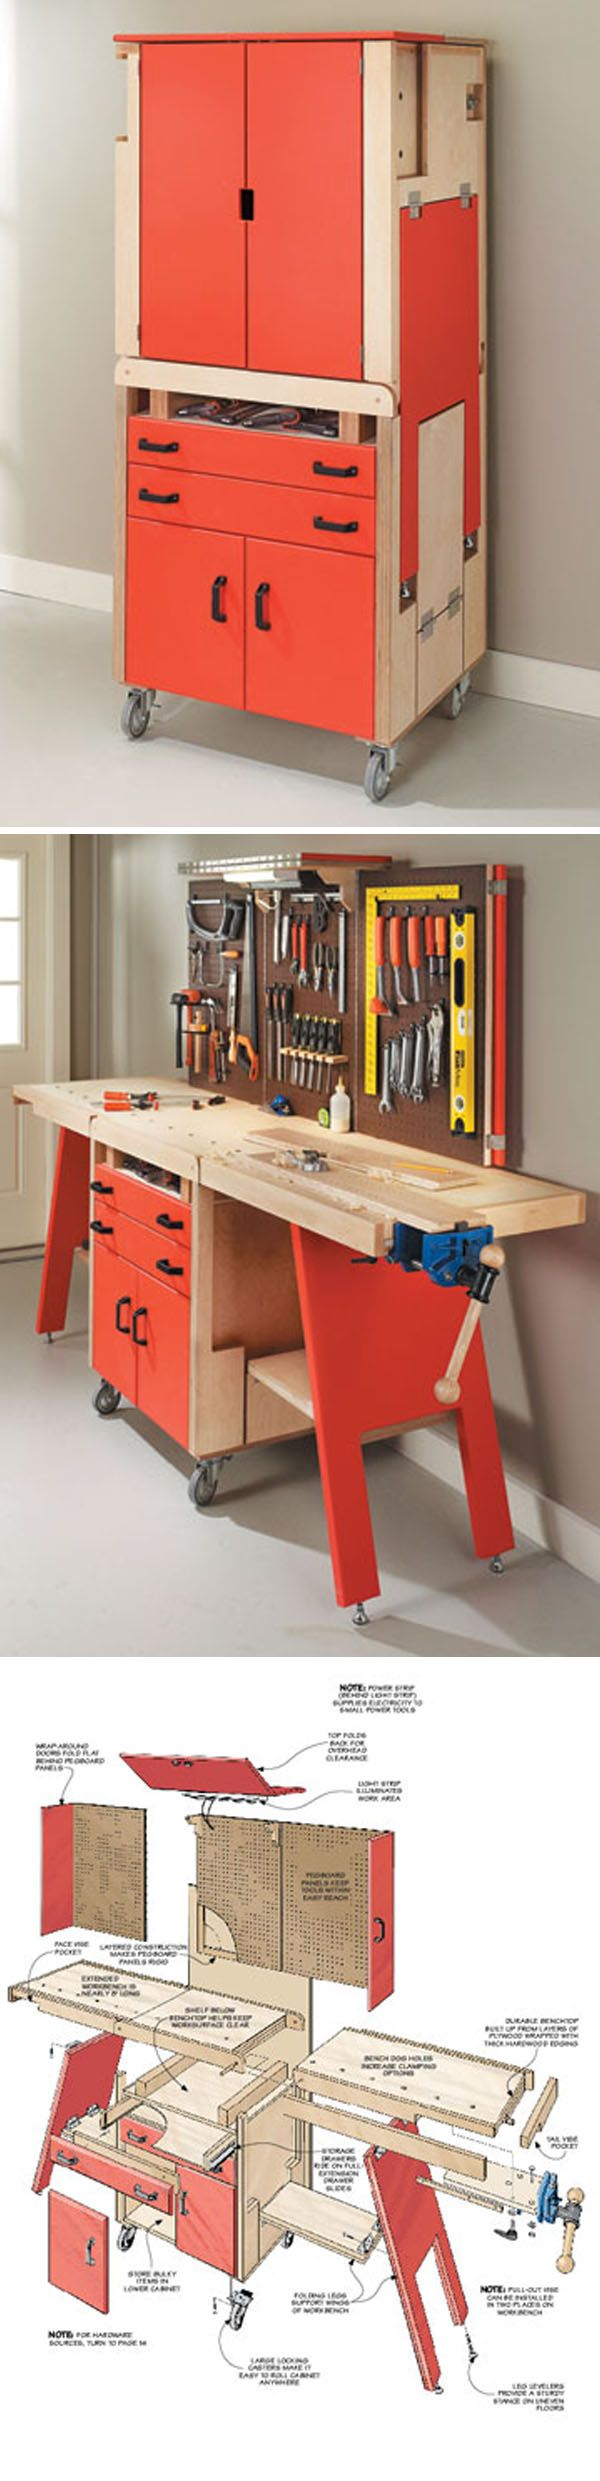 Folding Workshop Shop In A Box Combines A Full Featured Worksurface Http Woodsmithpla With Images Woodworking Projects Diy Woodworking Plans Diy Woodworking